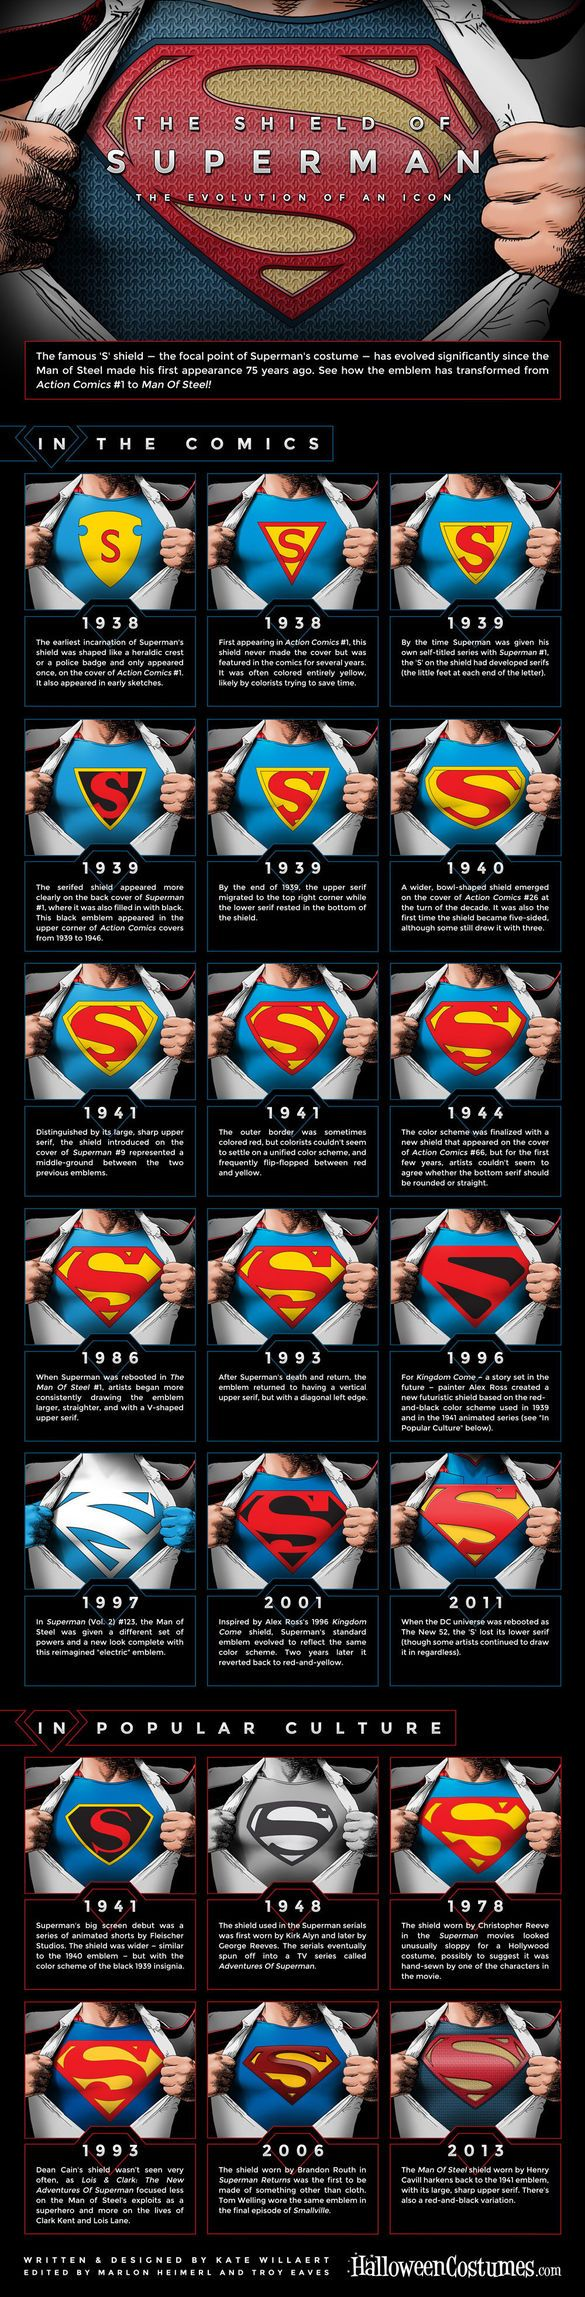 The evolution of superman logo